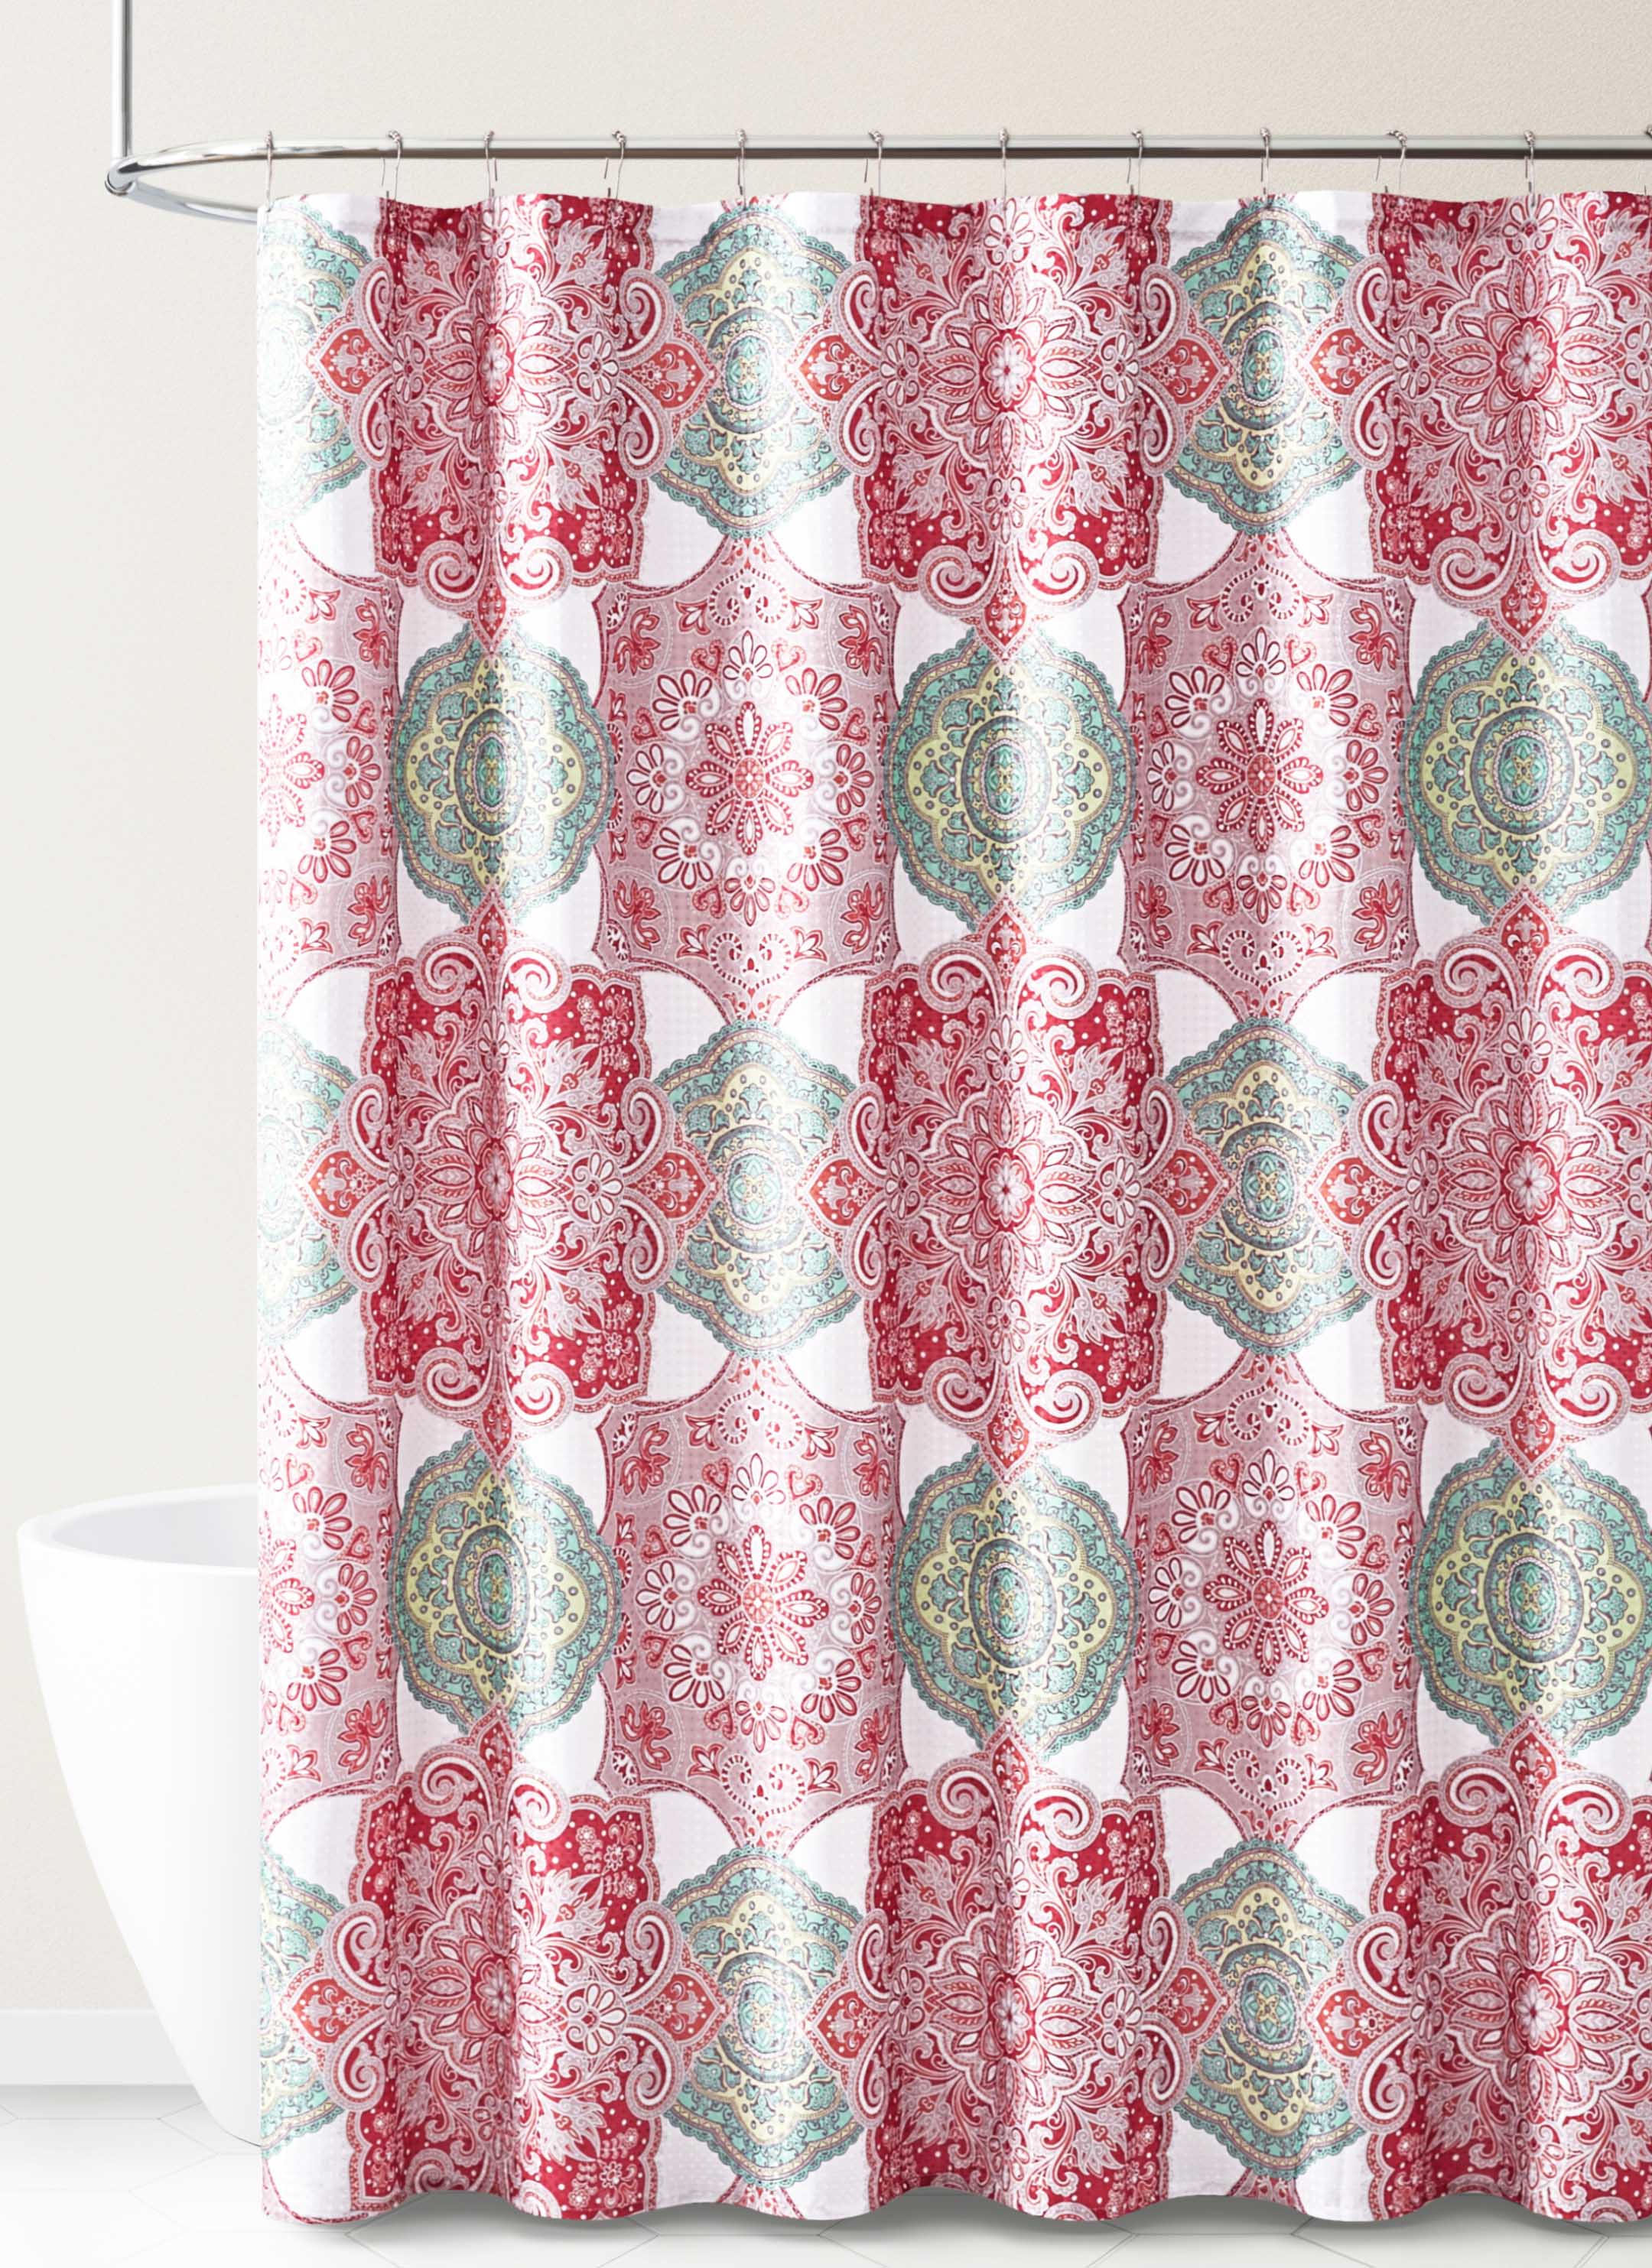 fabric shower curtain for bathroom white teal coral taupe with medallion design 72in x72 incoral walmart com